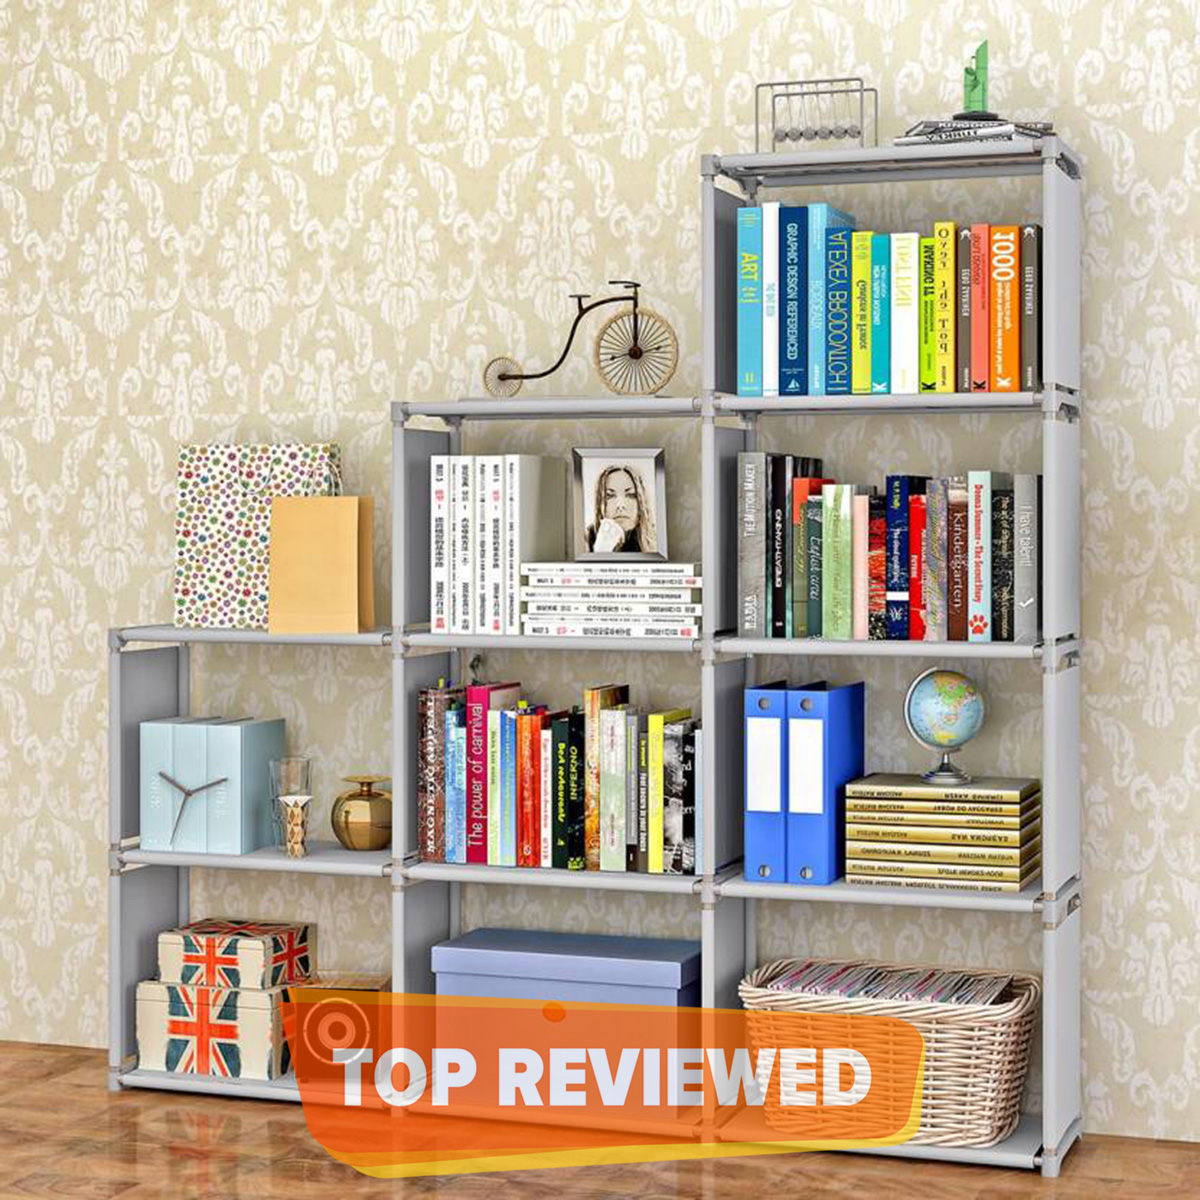 2X6 Layers Double row books rack shelfs for storage of books, Toys, Medicine, clothes etc. multipurpose